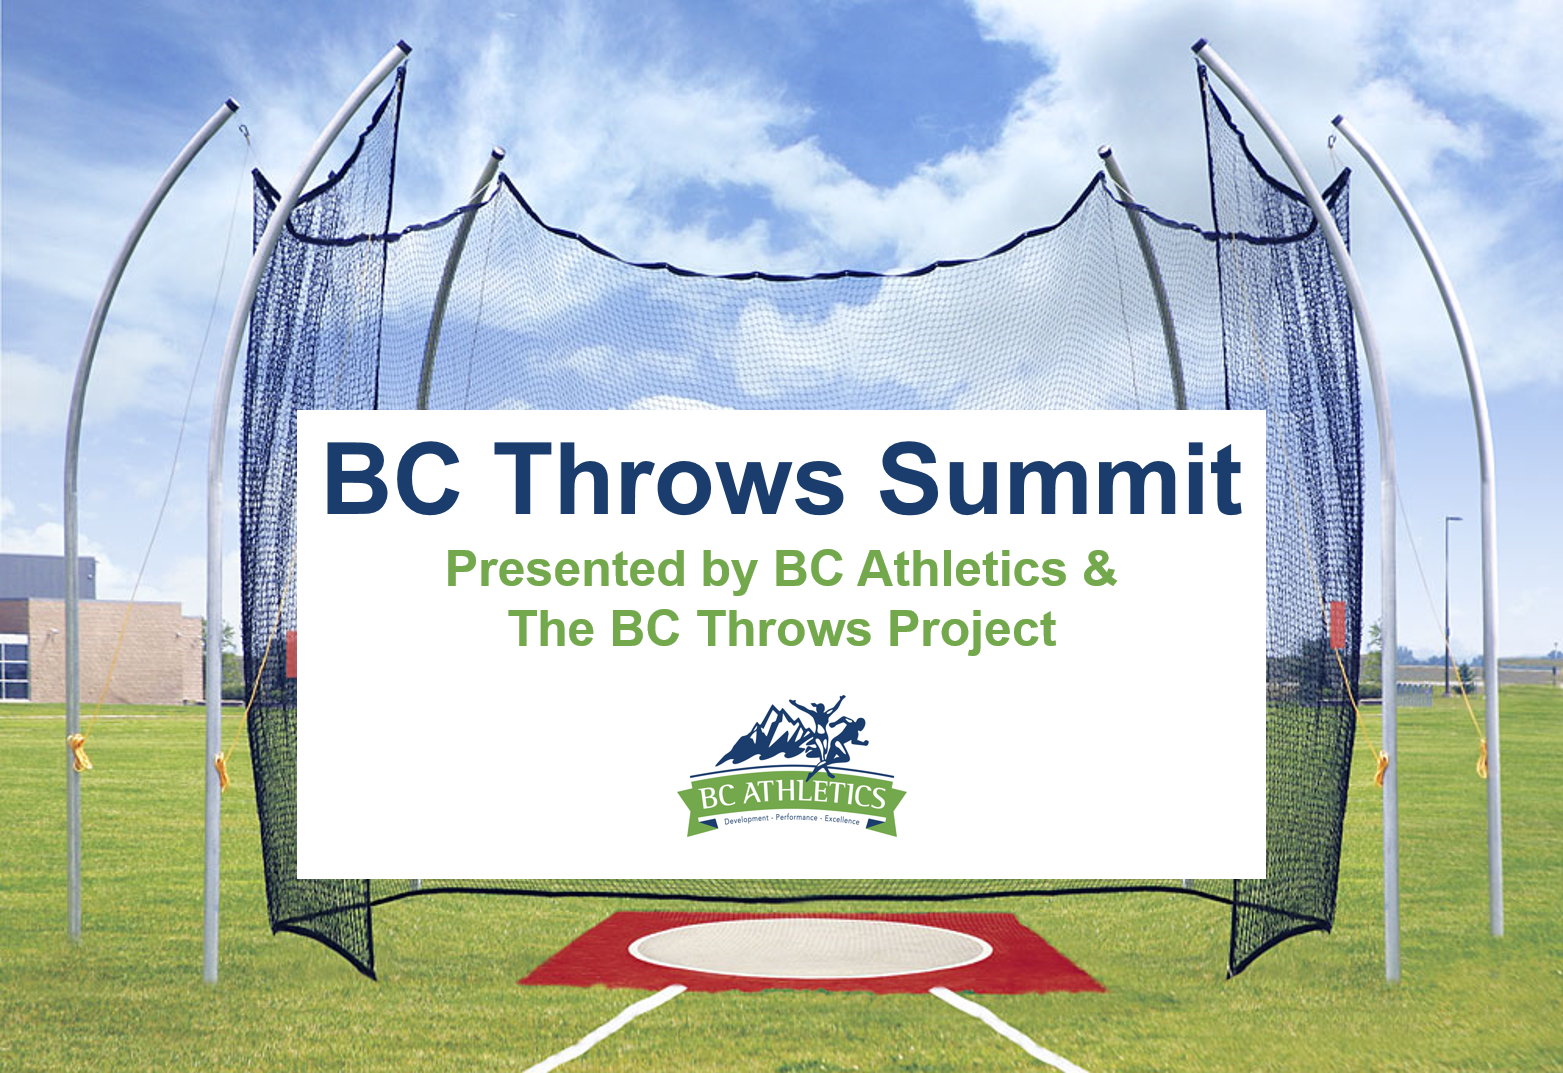 BC Athletics - Track and Field, Road Running, Cross ...